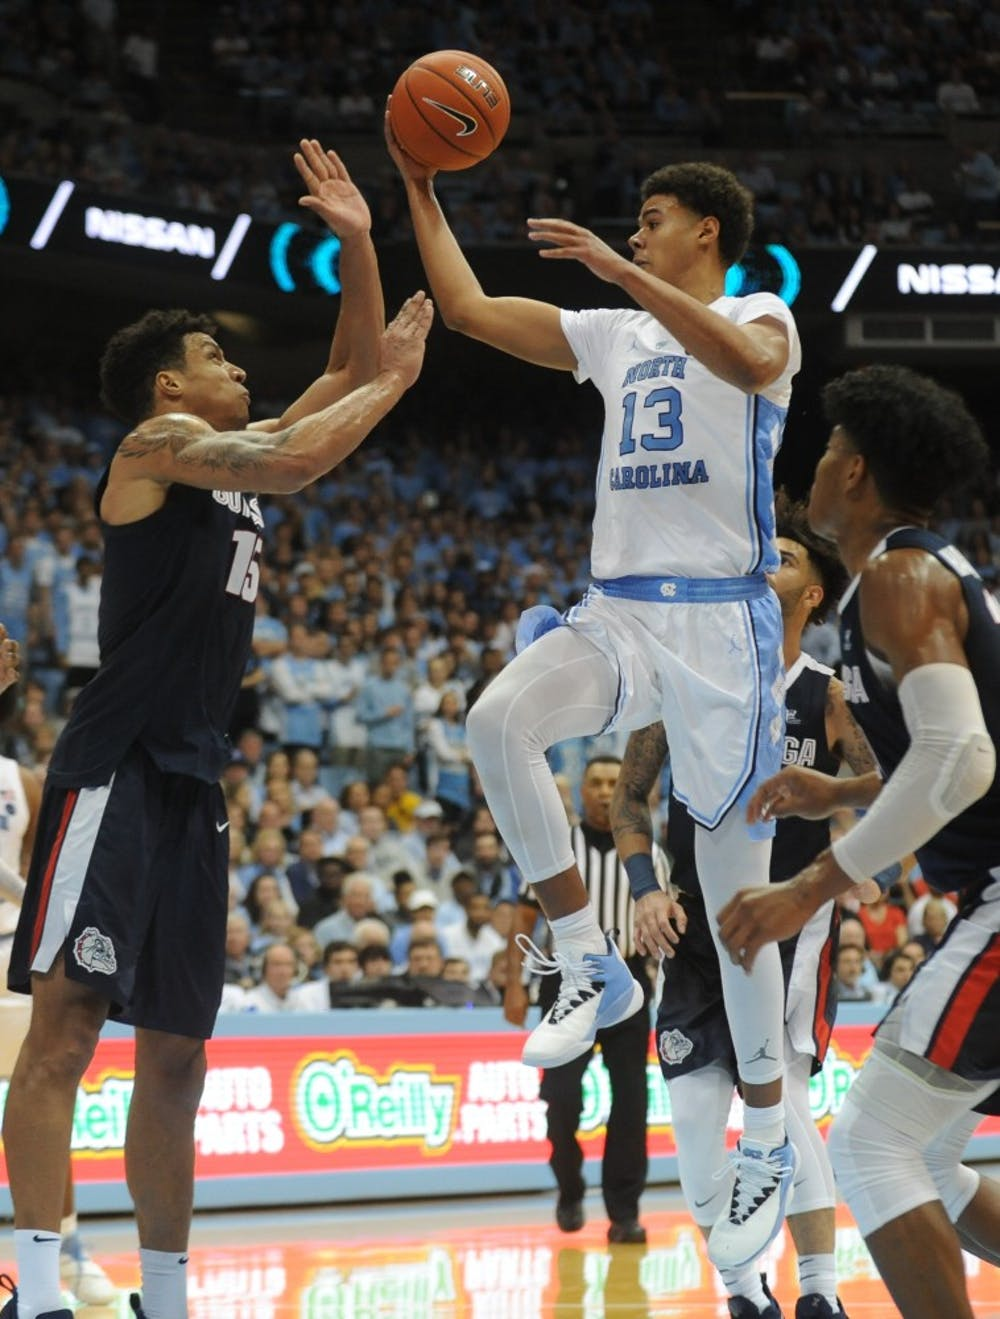 No. 12 UNC gets the best of No. 4 Gonzaga, 103-90, in rematch of 2017 National Championship